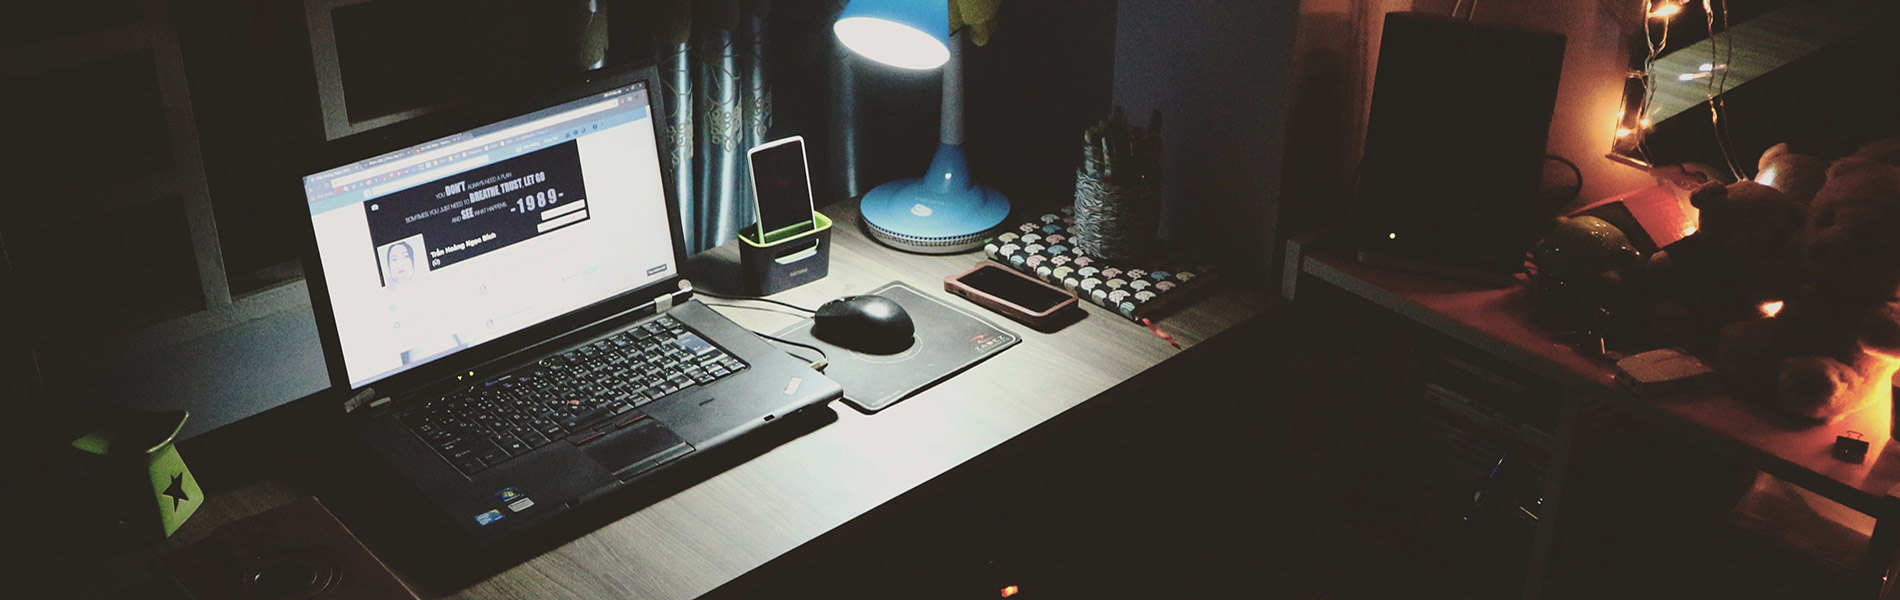 Laptop on a desk, dark room